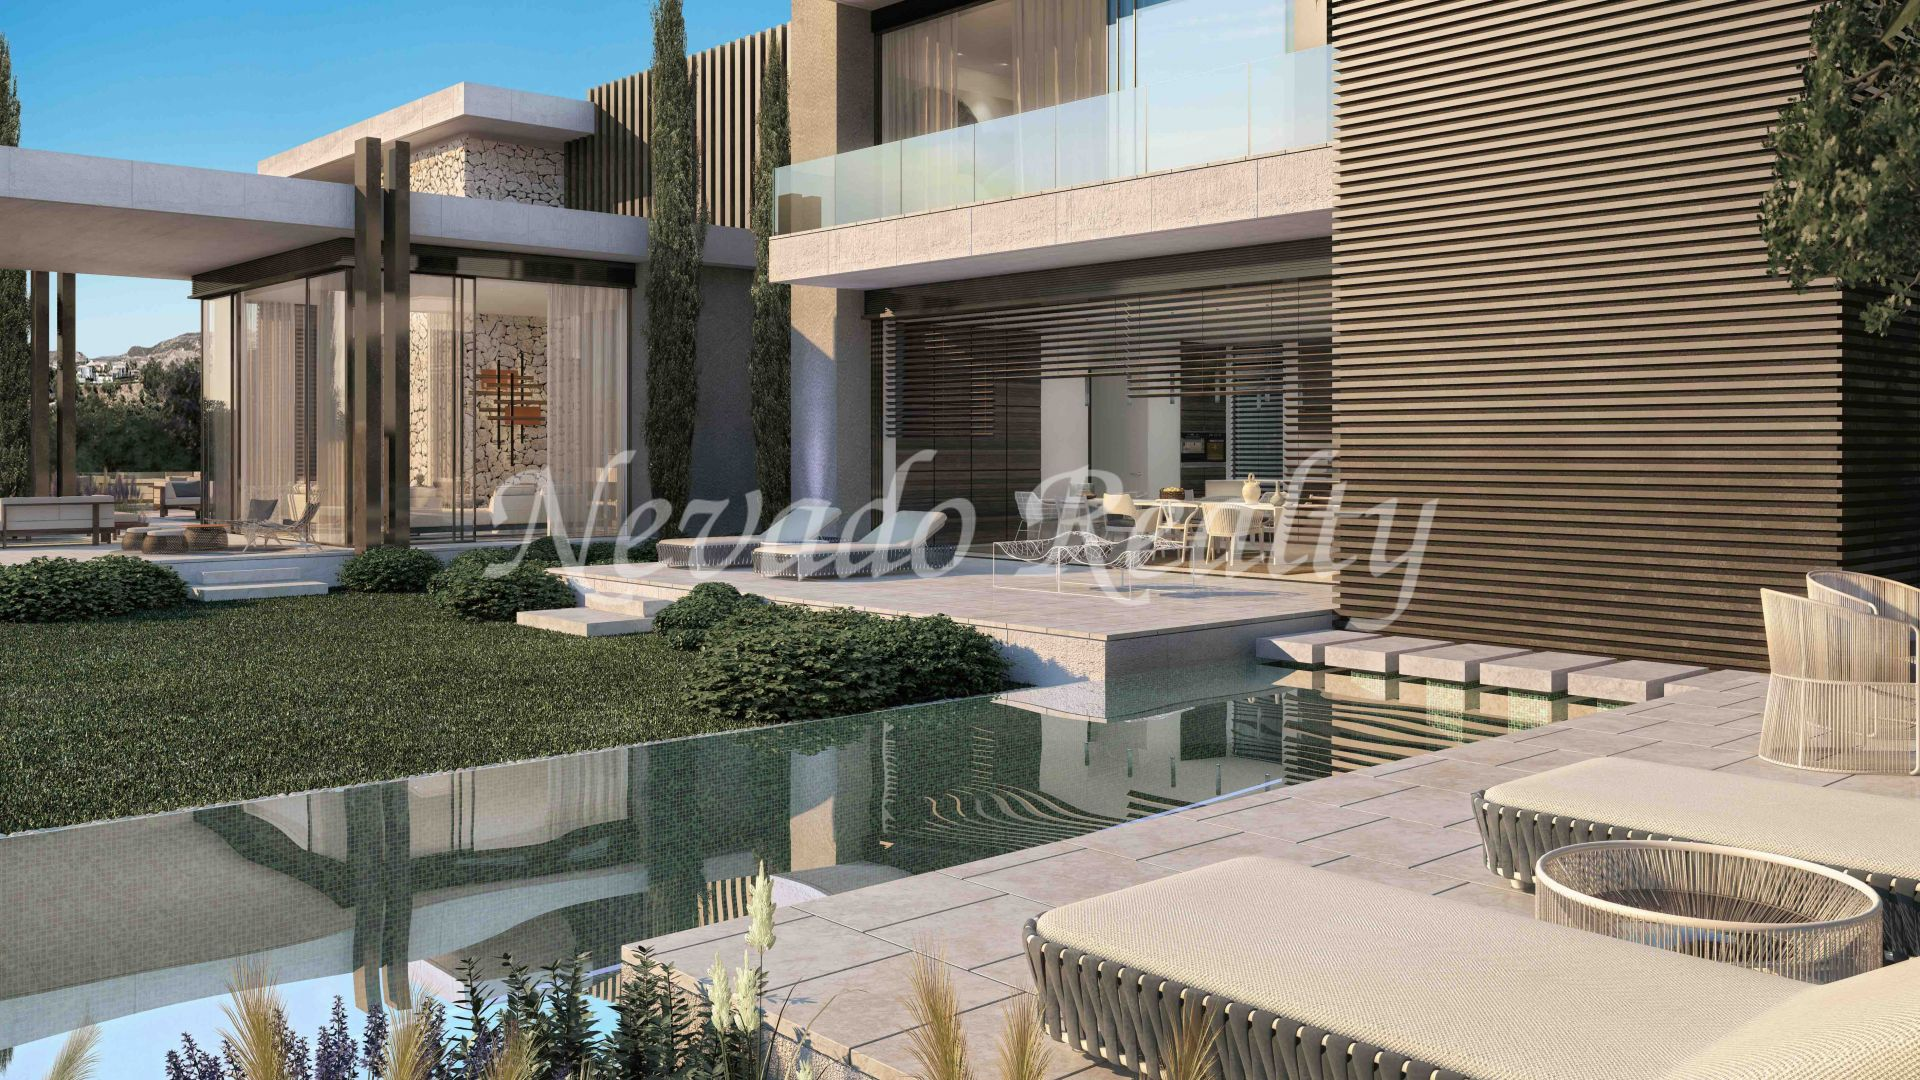 Project of 12 luxury villas with panoramic views in La Quinta